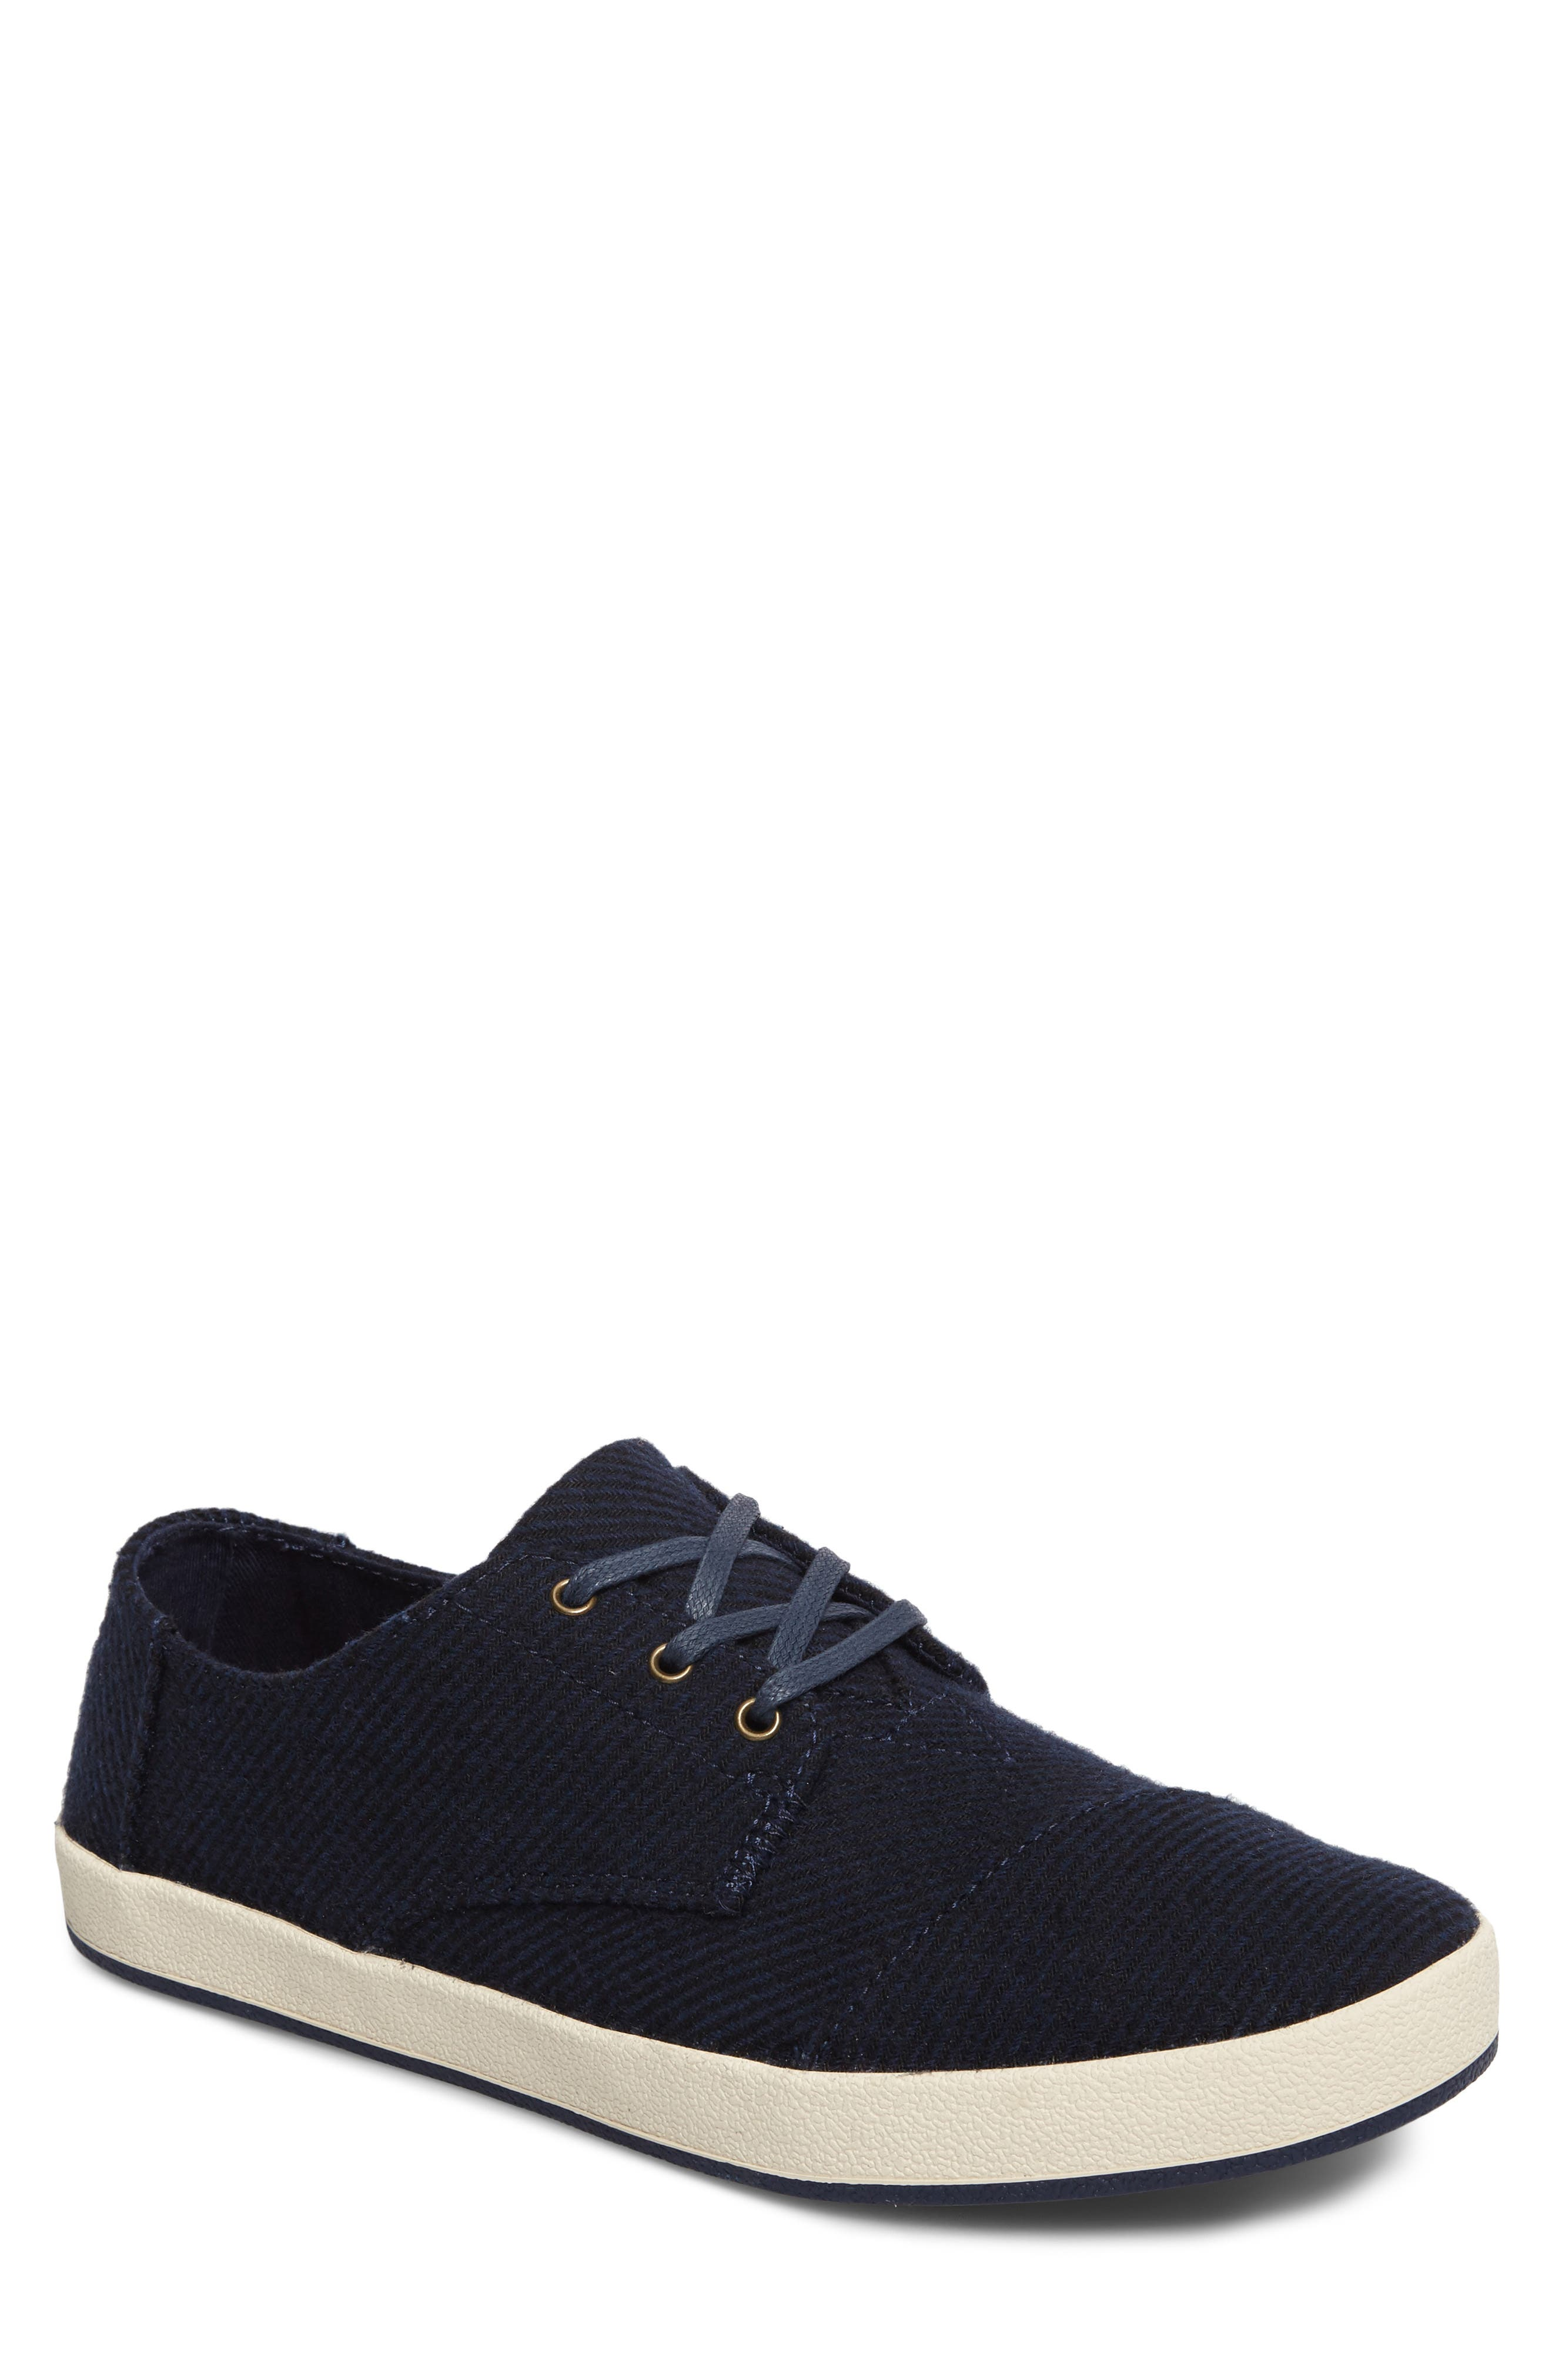 Alternate Image 1 Selected - TOMS 'Paseo' Sneaker (Men)